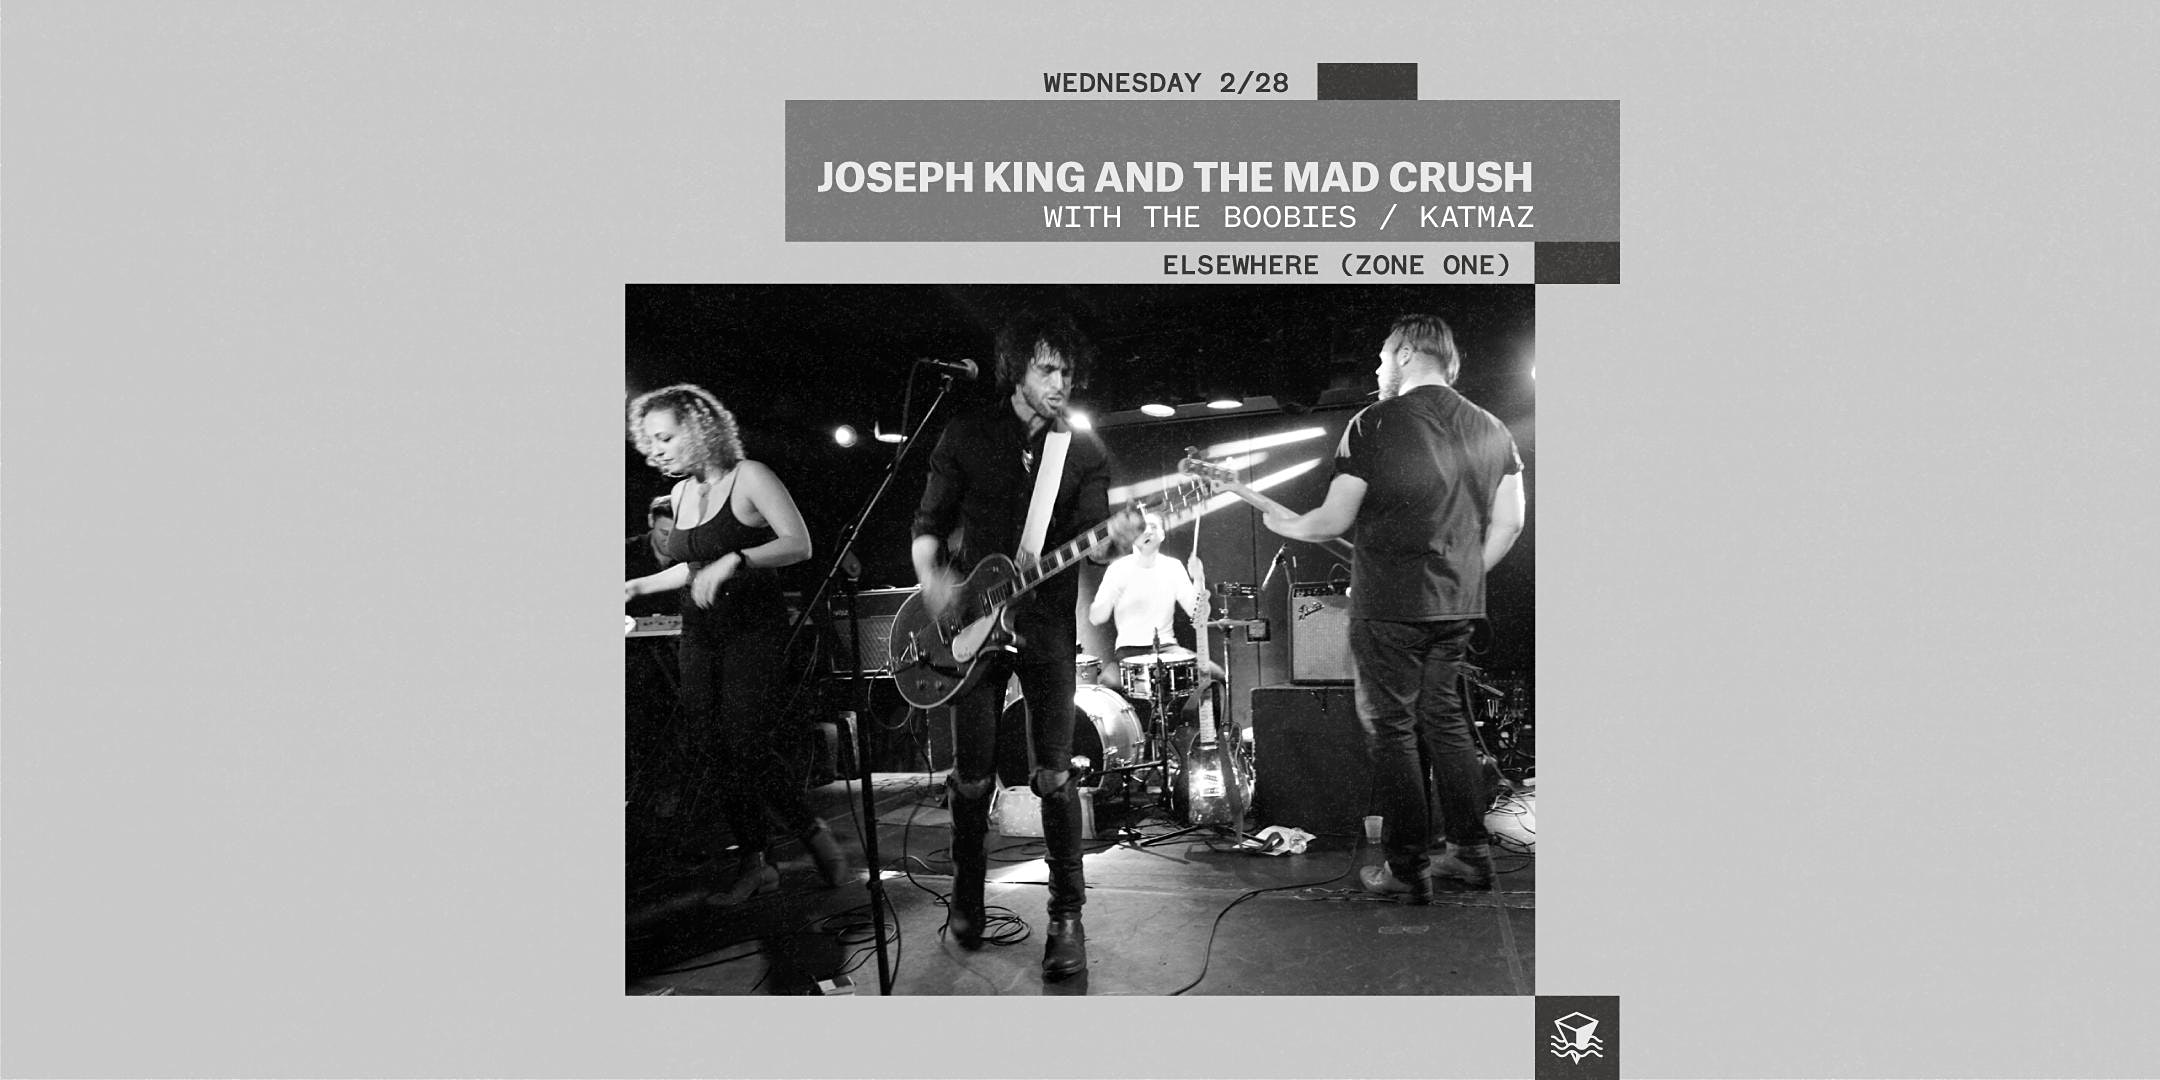 Joseph King and the Mad Crush